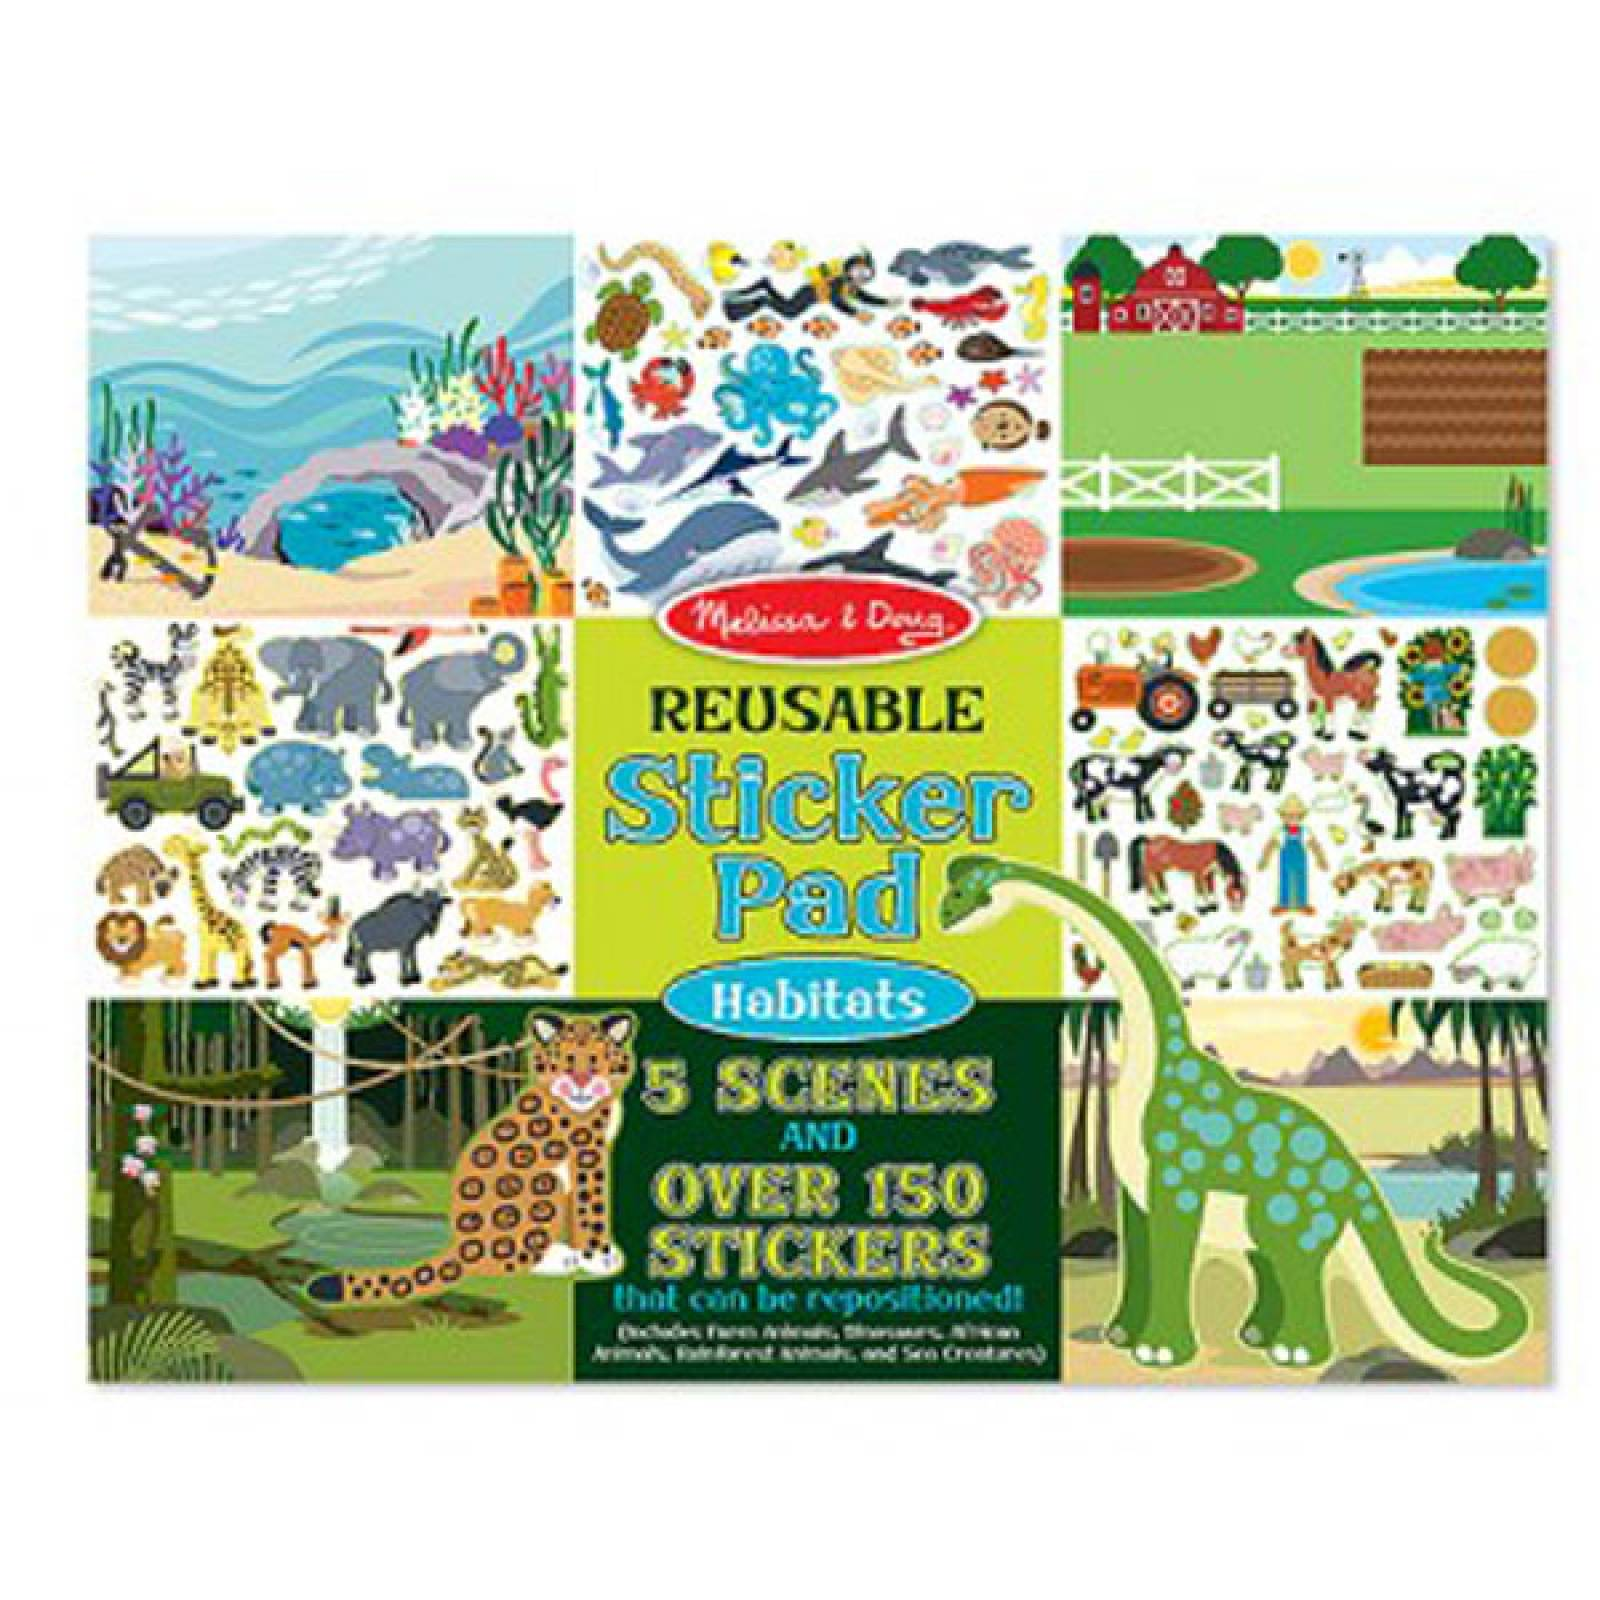 Reusable Sticker Pad - Habitats 3+